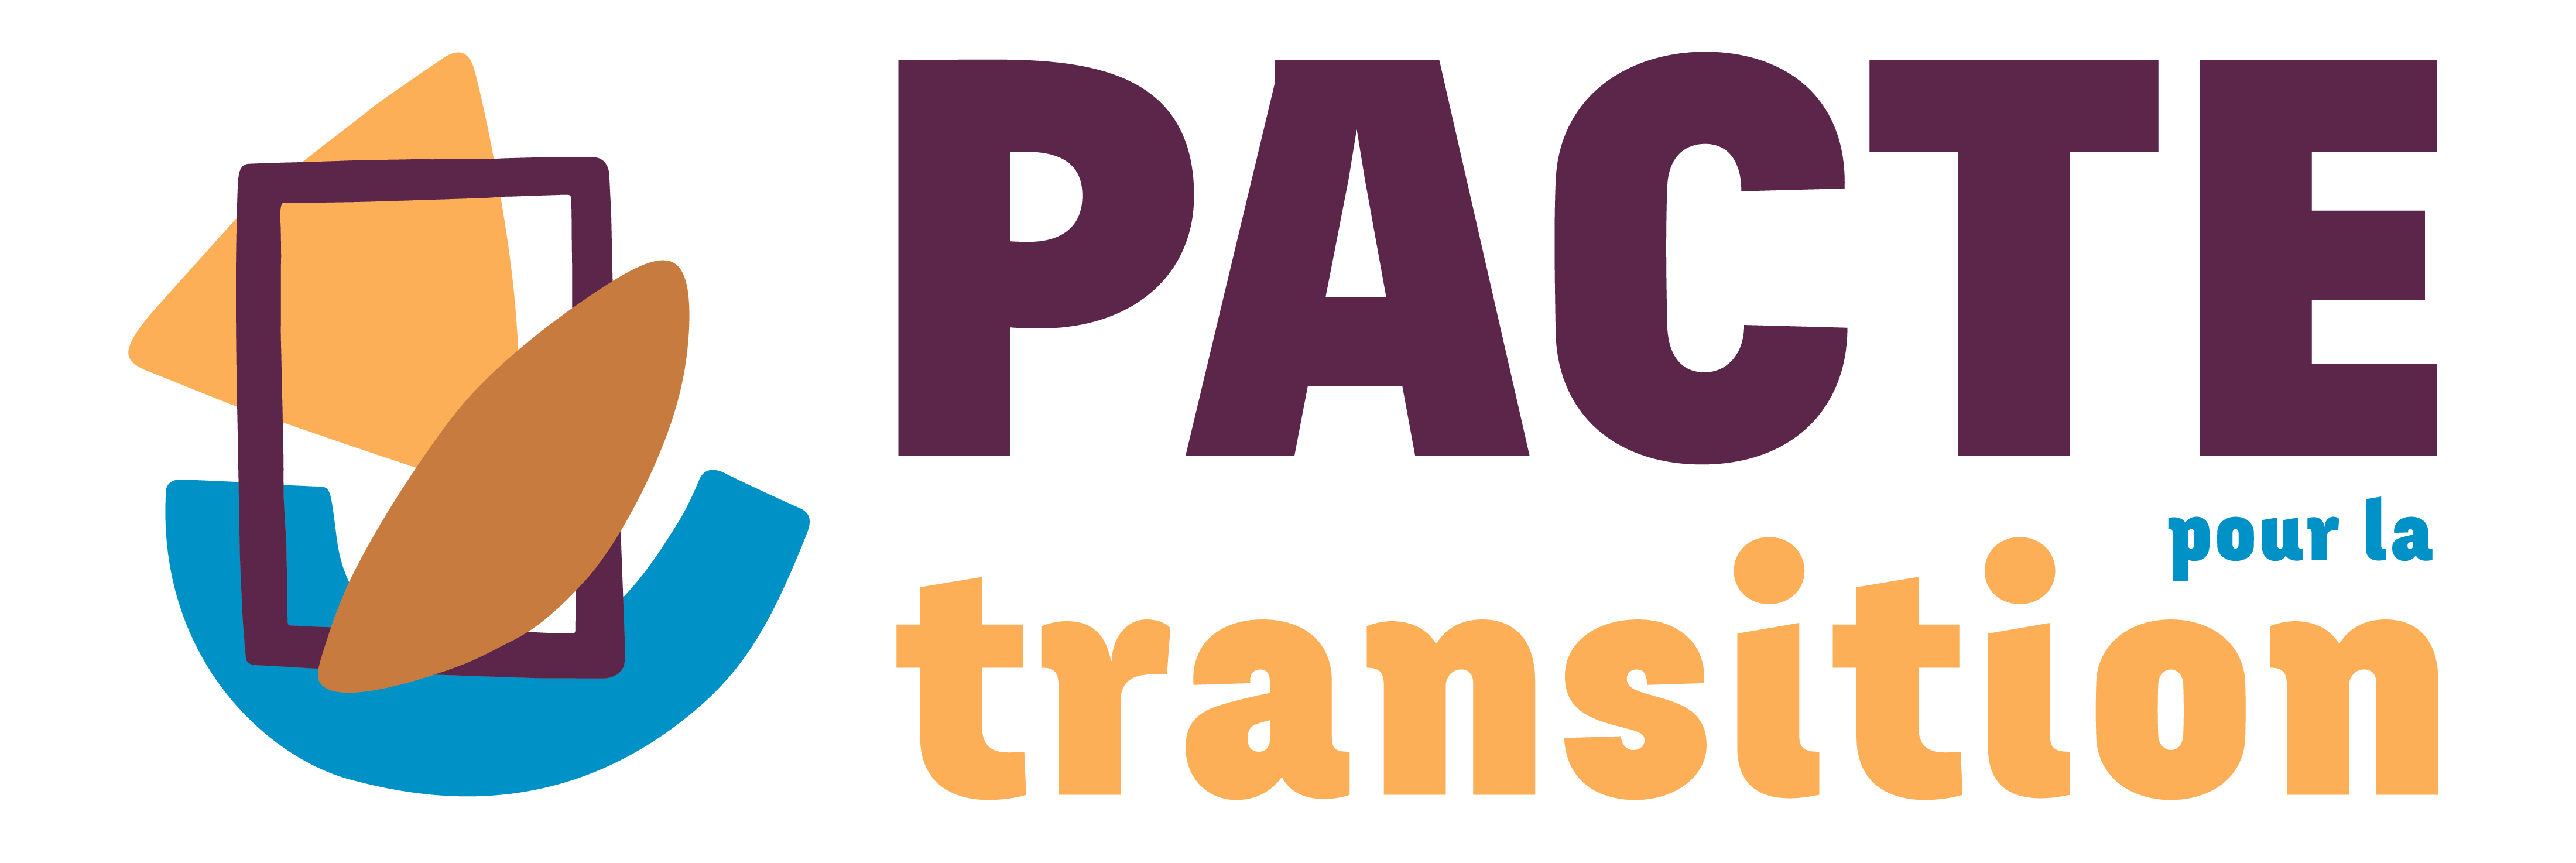 PACTE-TRANSITION-LOGOTYPE_couleurs